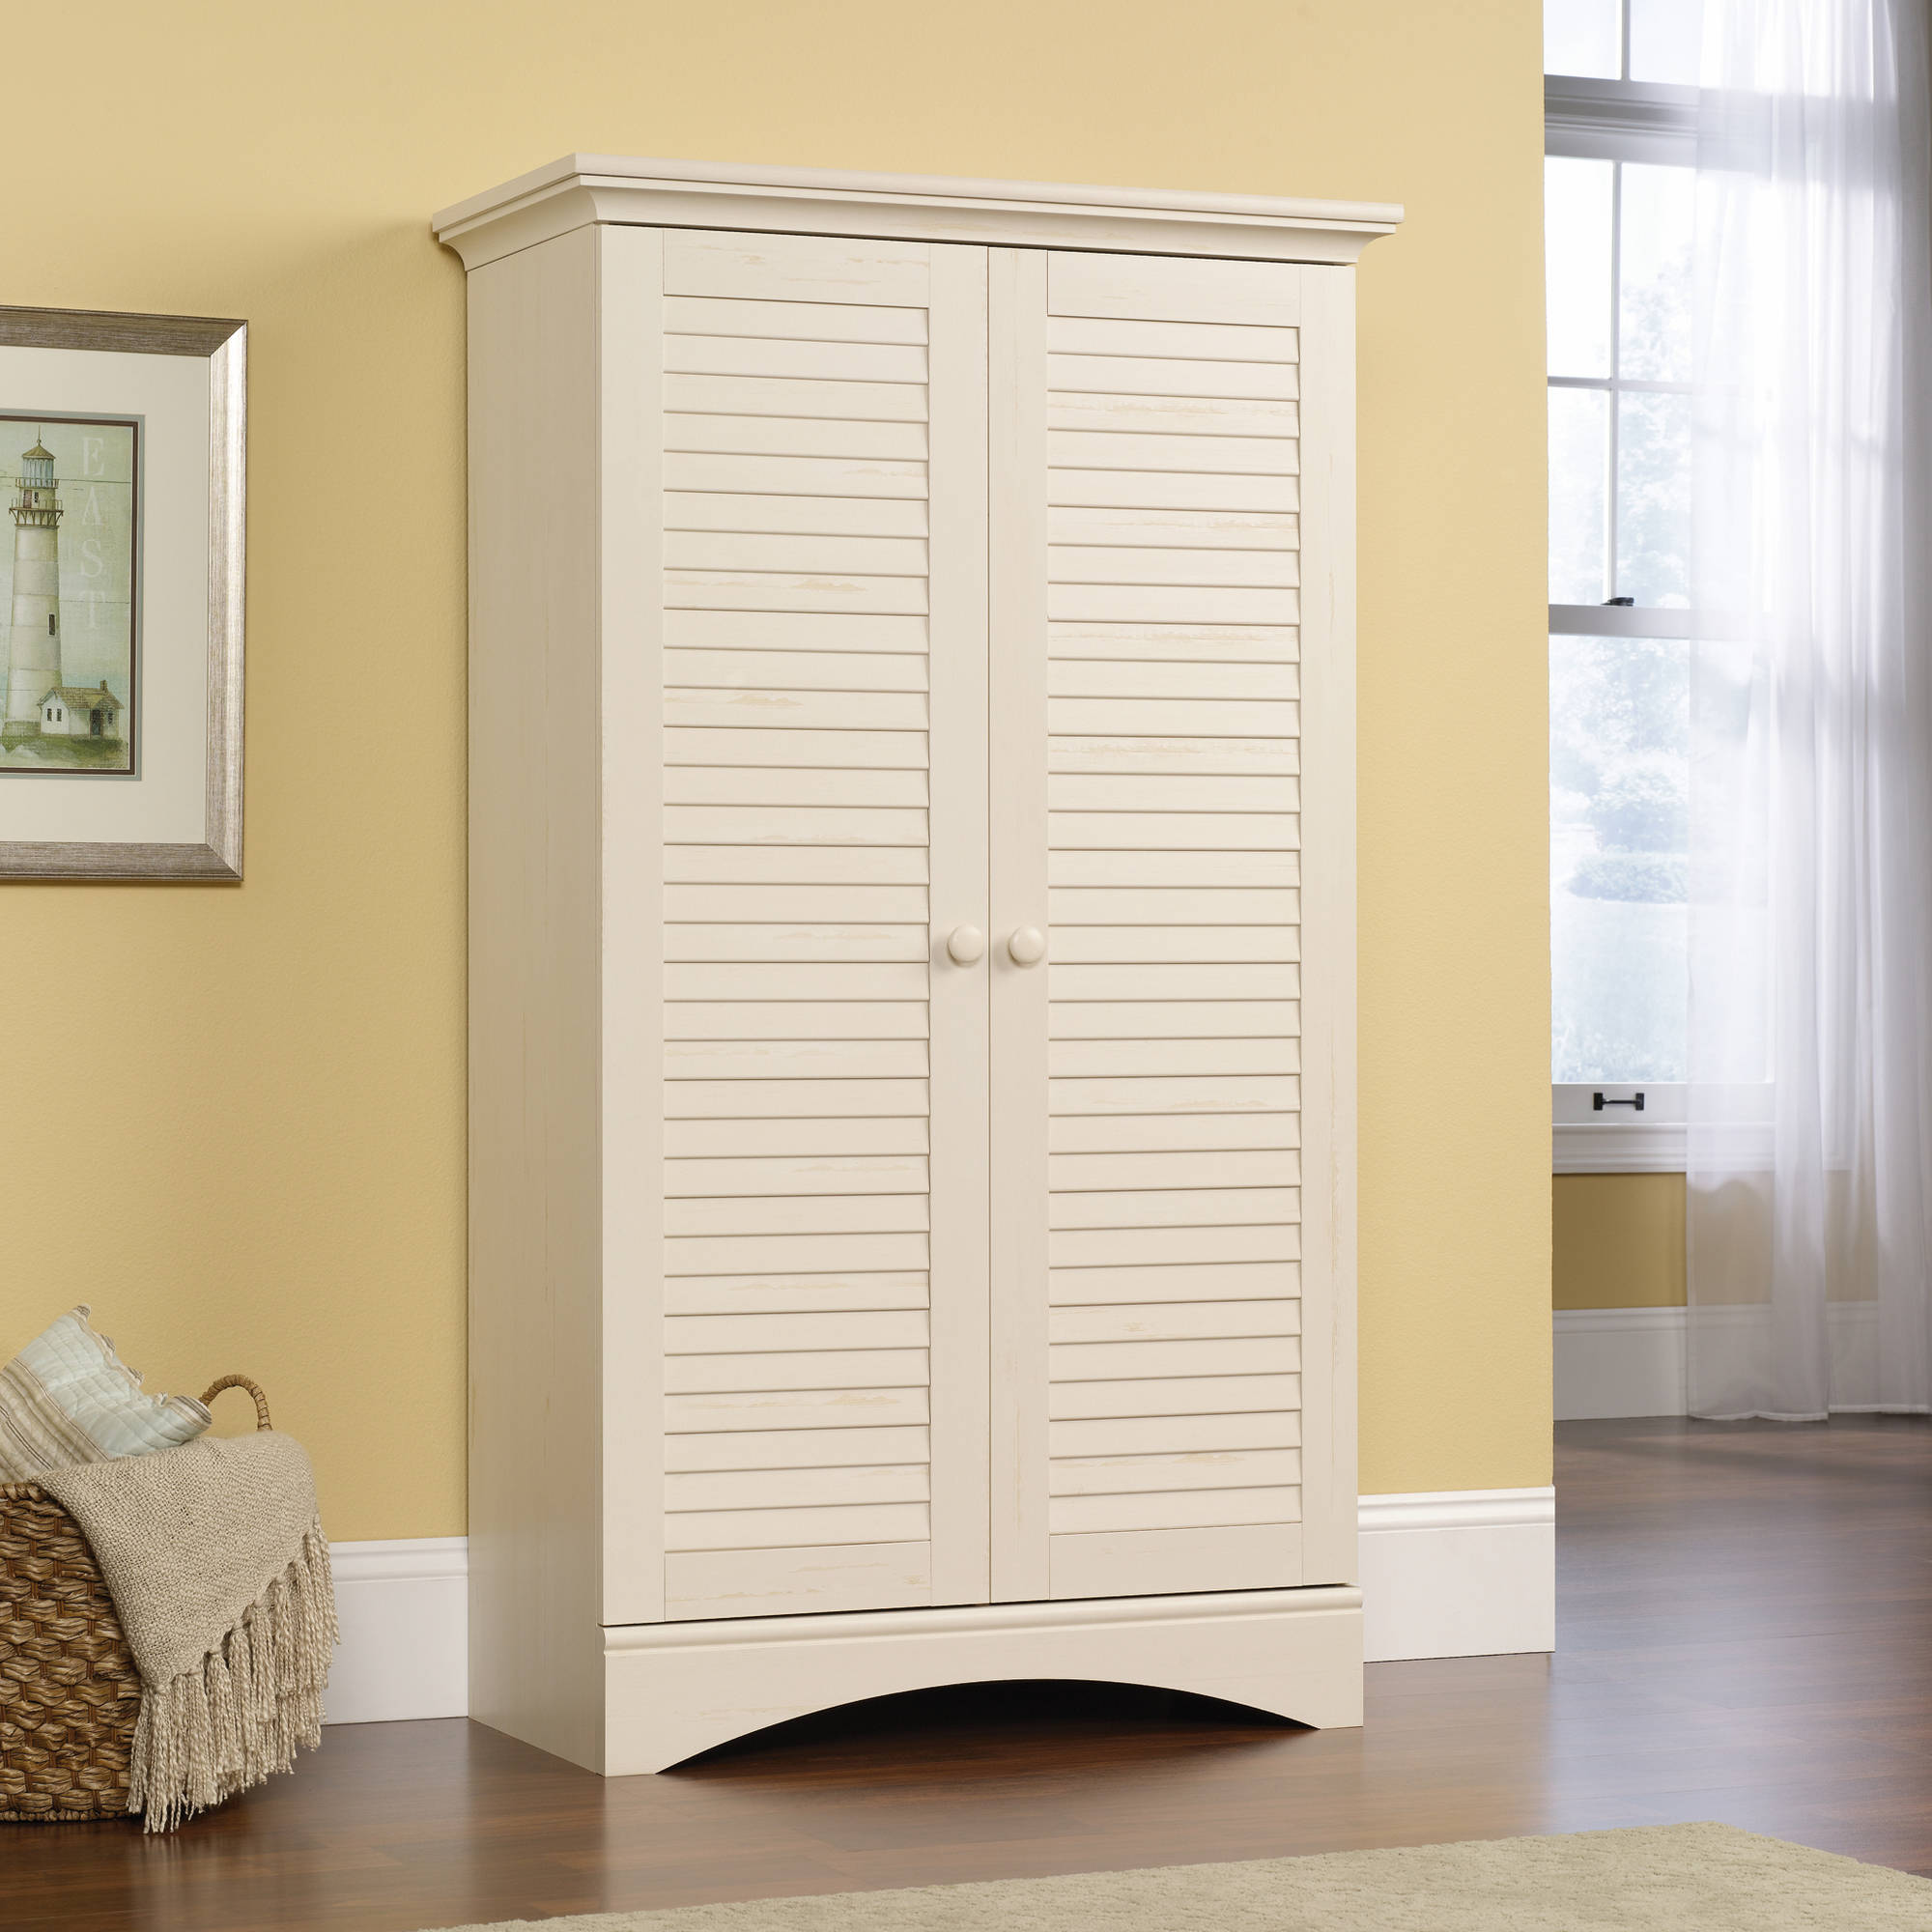 Sauder Harbor View Storage Cabinet Multiple Colors Walmartcom - Kitchen storage cabinets walmart